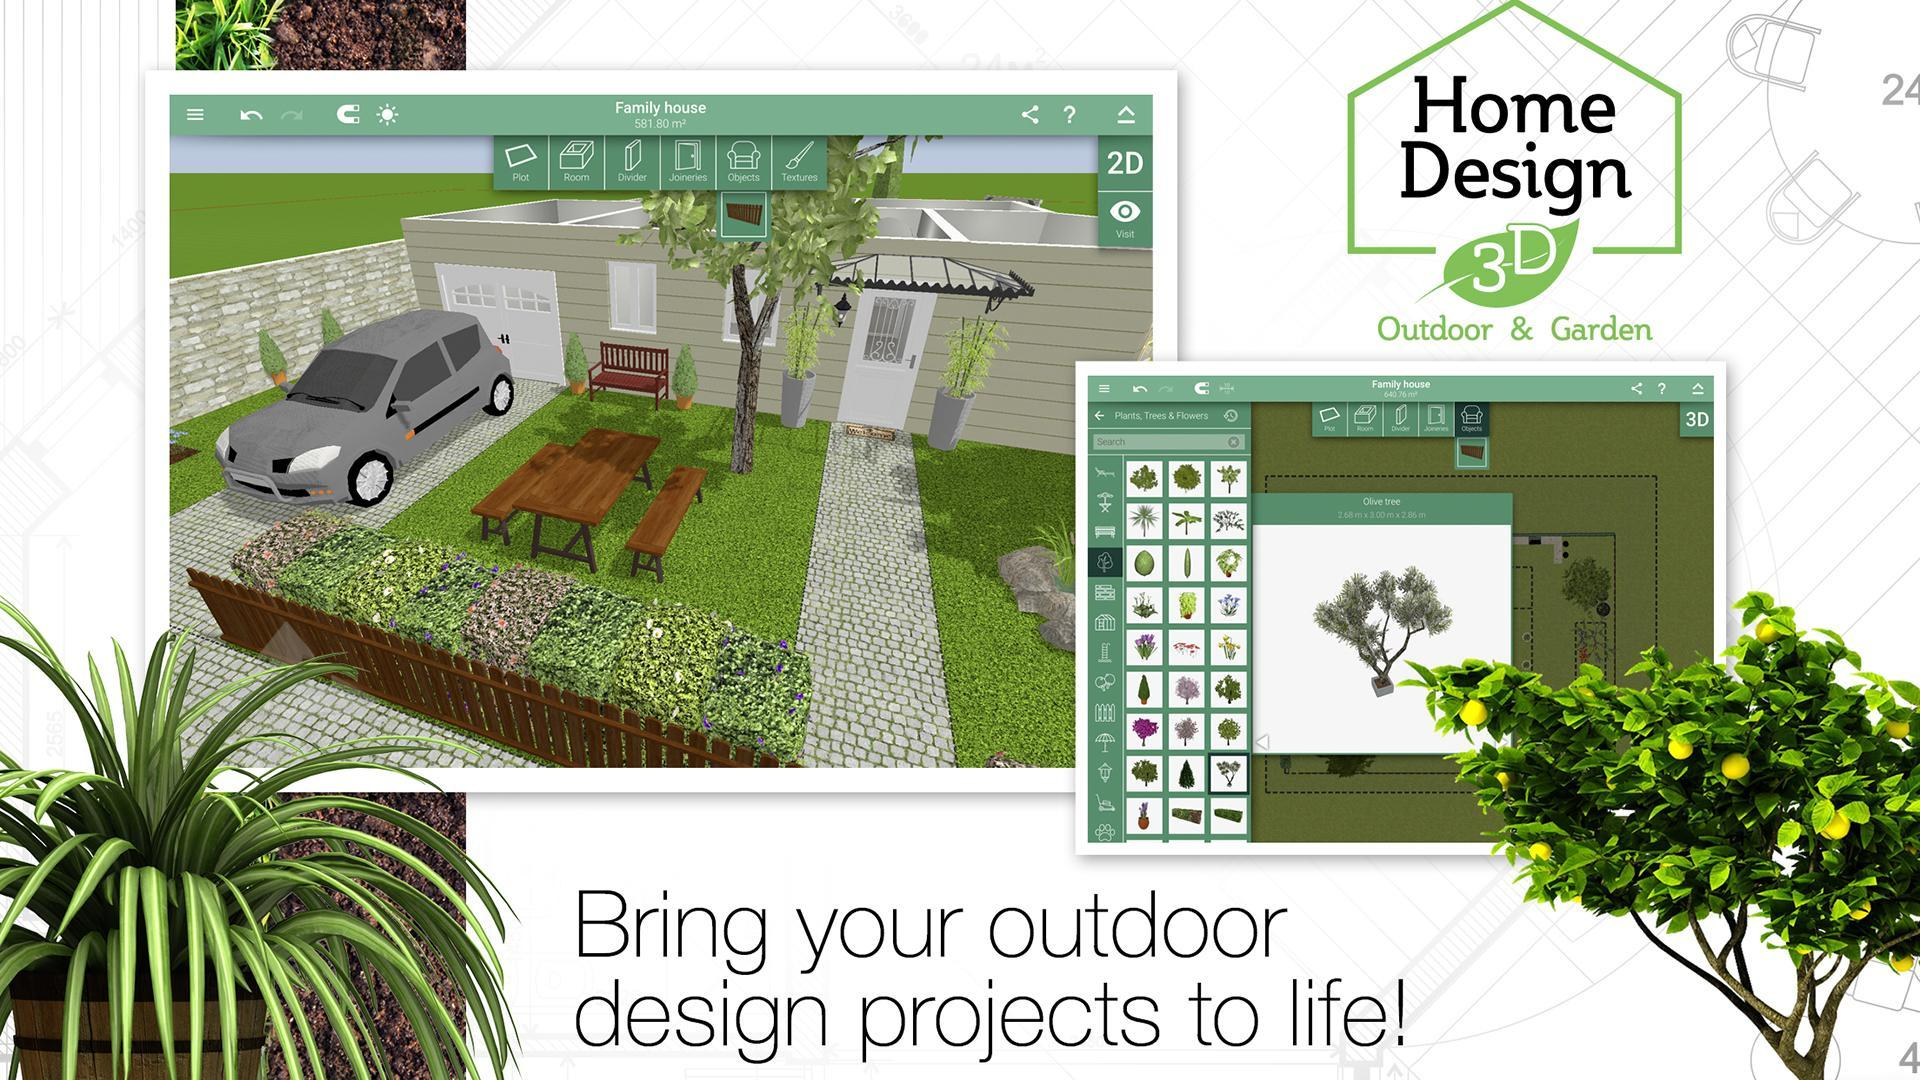 Home Design 3d Outdoor Garden For Android Apk Download